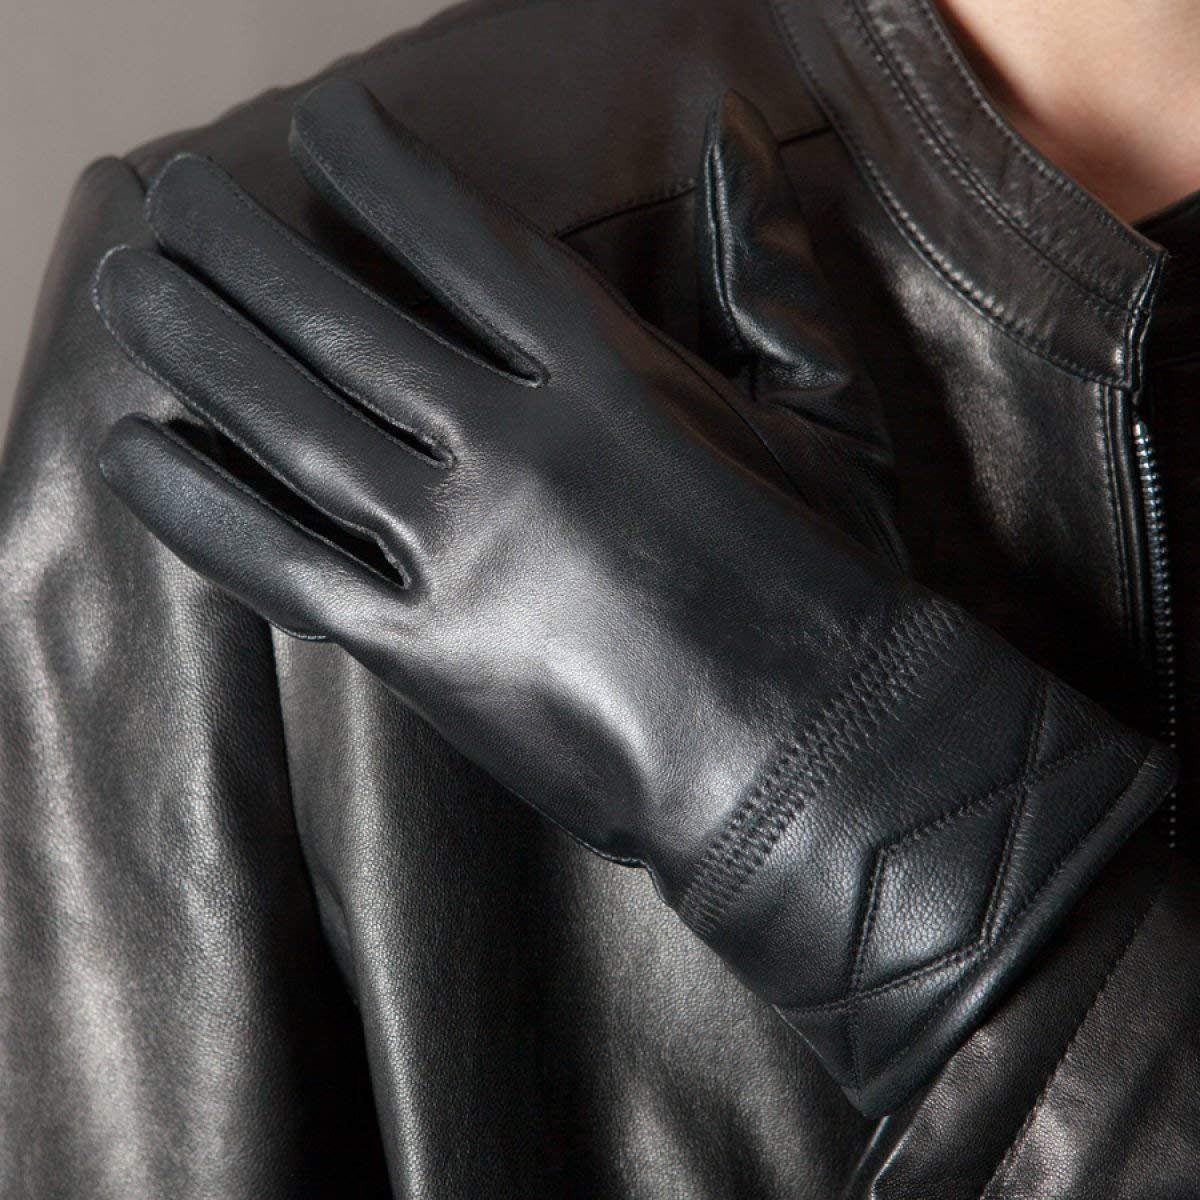 CWJ Gloves Men Warm Thickening Fashion,Black,One Size by CWJ (Image #5)